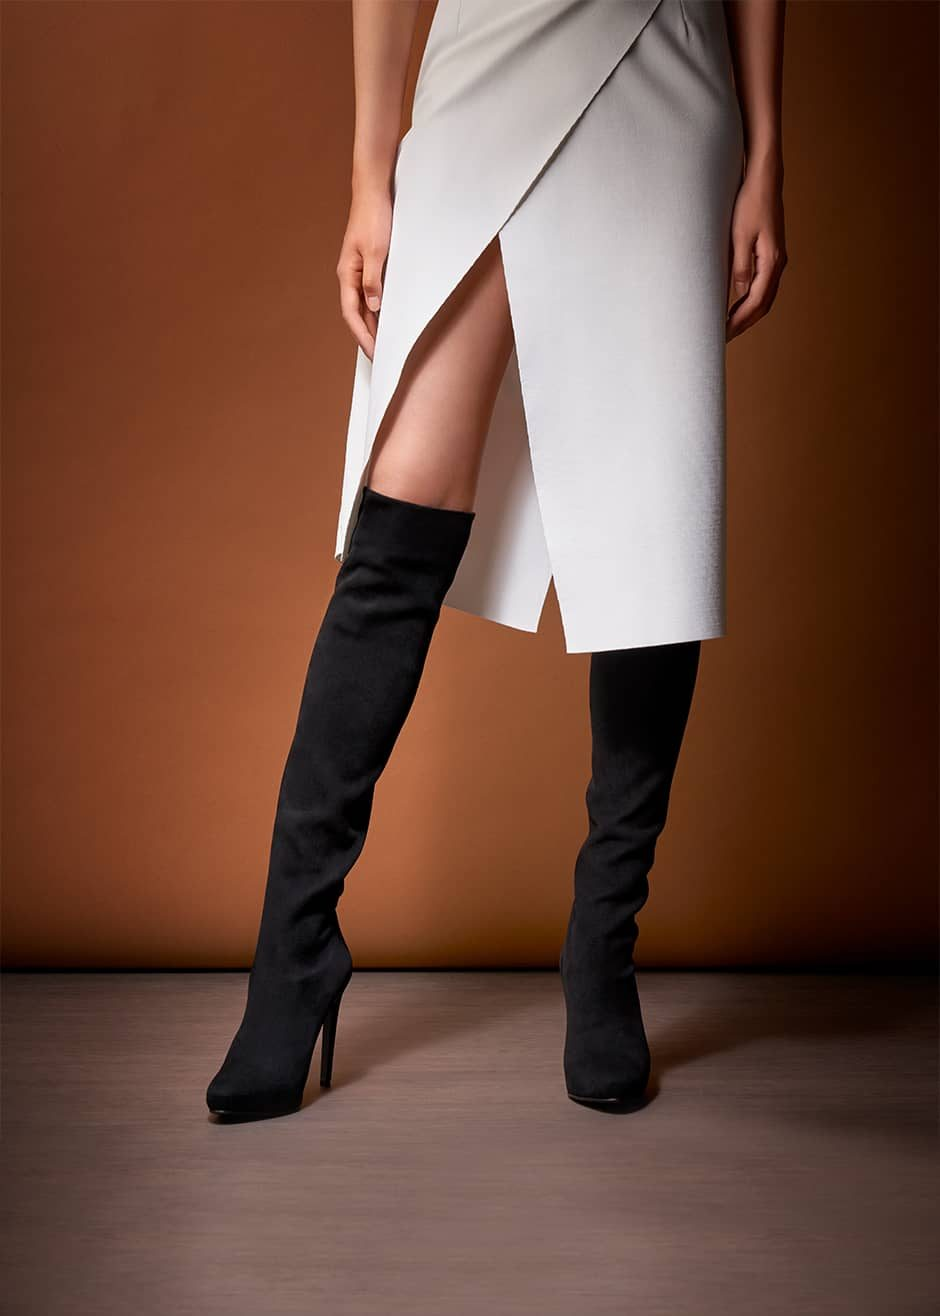 Tokyo –  Cuissard in black stretch suede with high heel